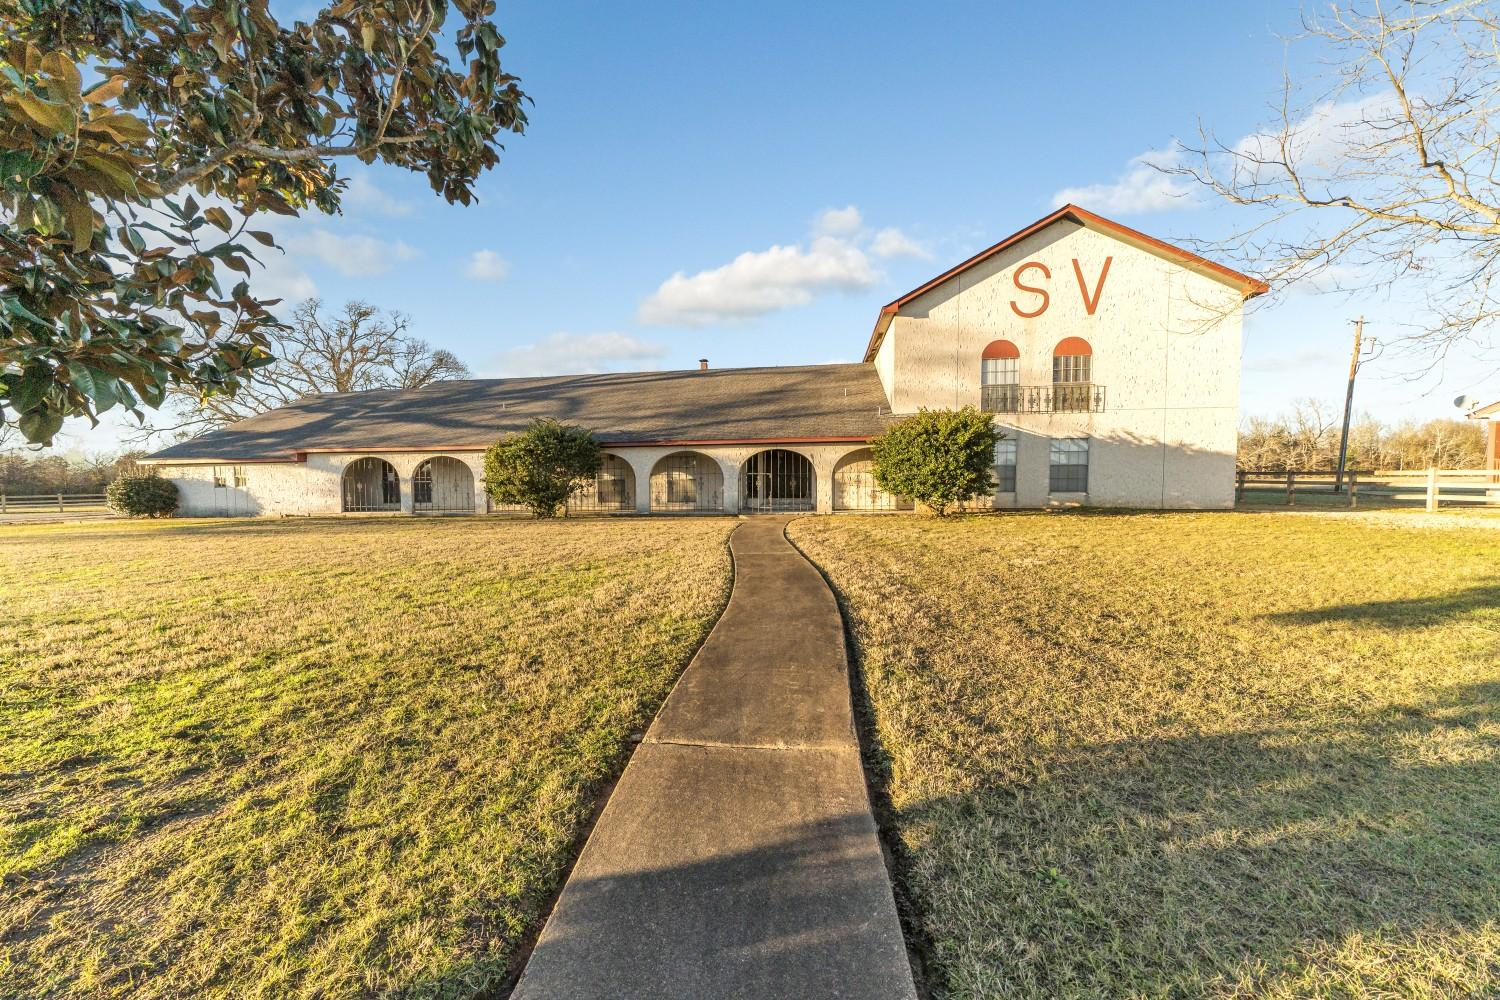 Farmhouse For Sale In Texas Spitfire Valley Ranch For Sale East Texas Hay Farm Horse And